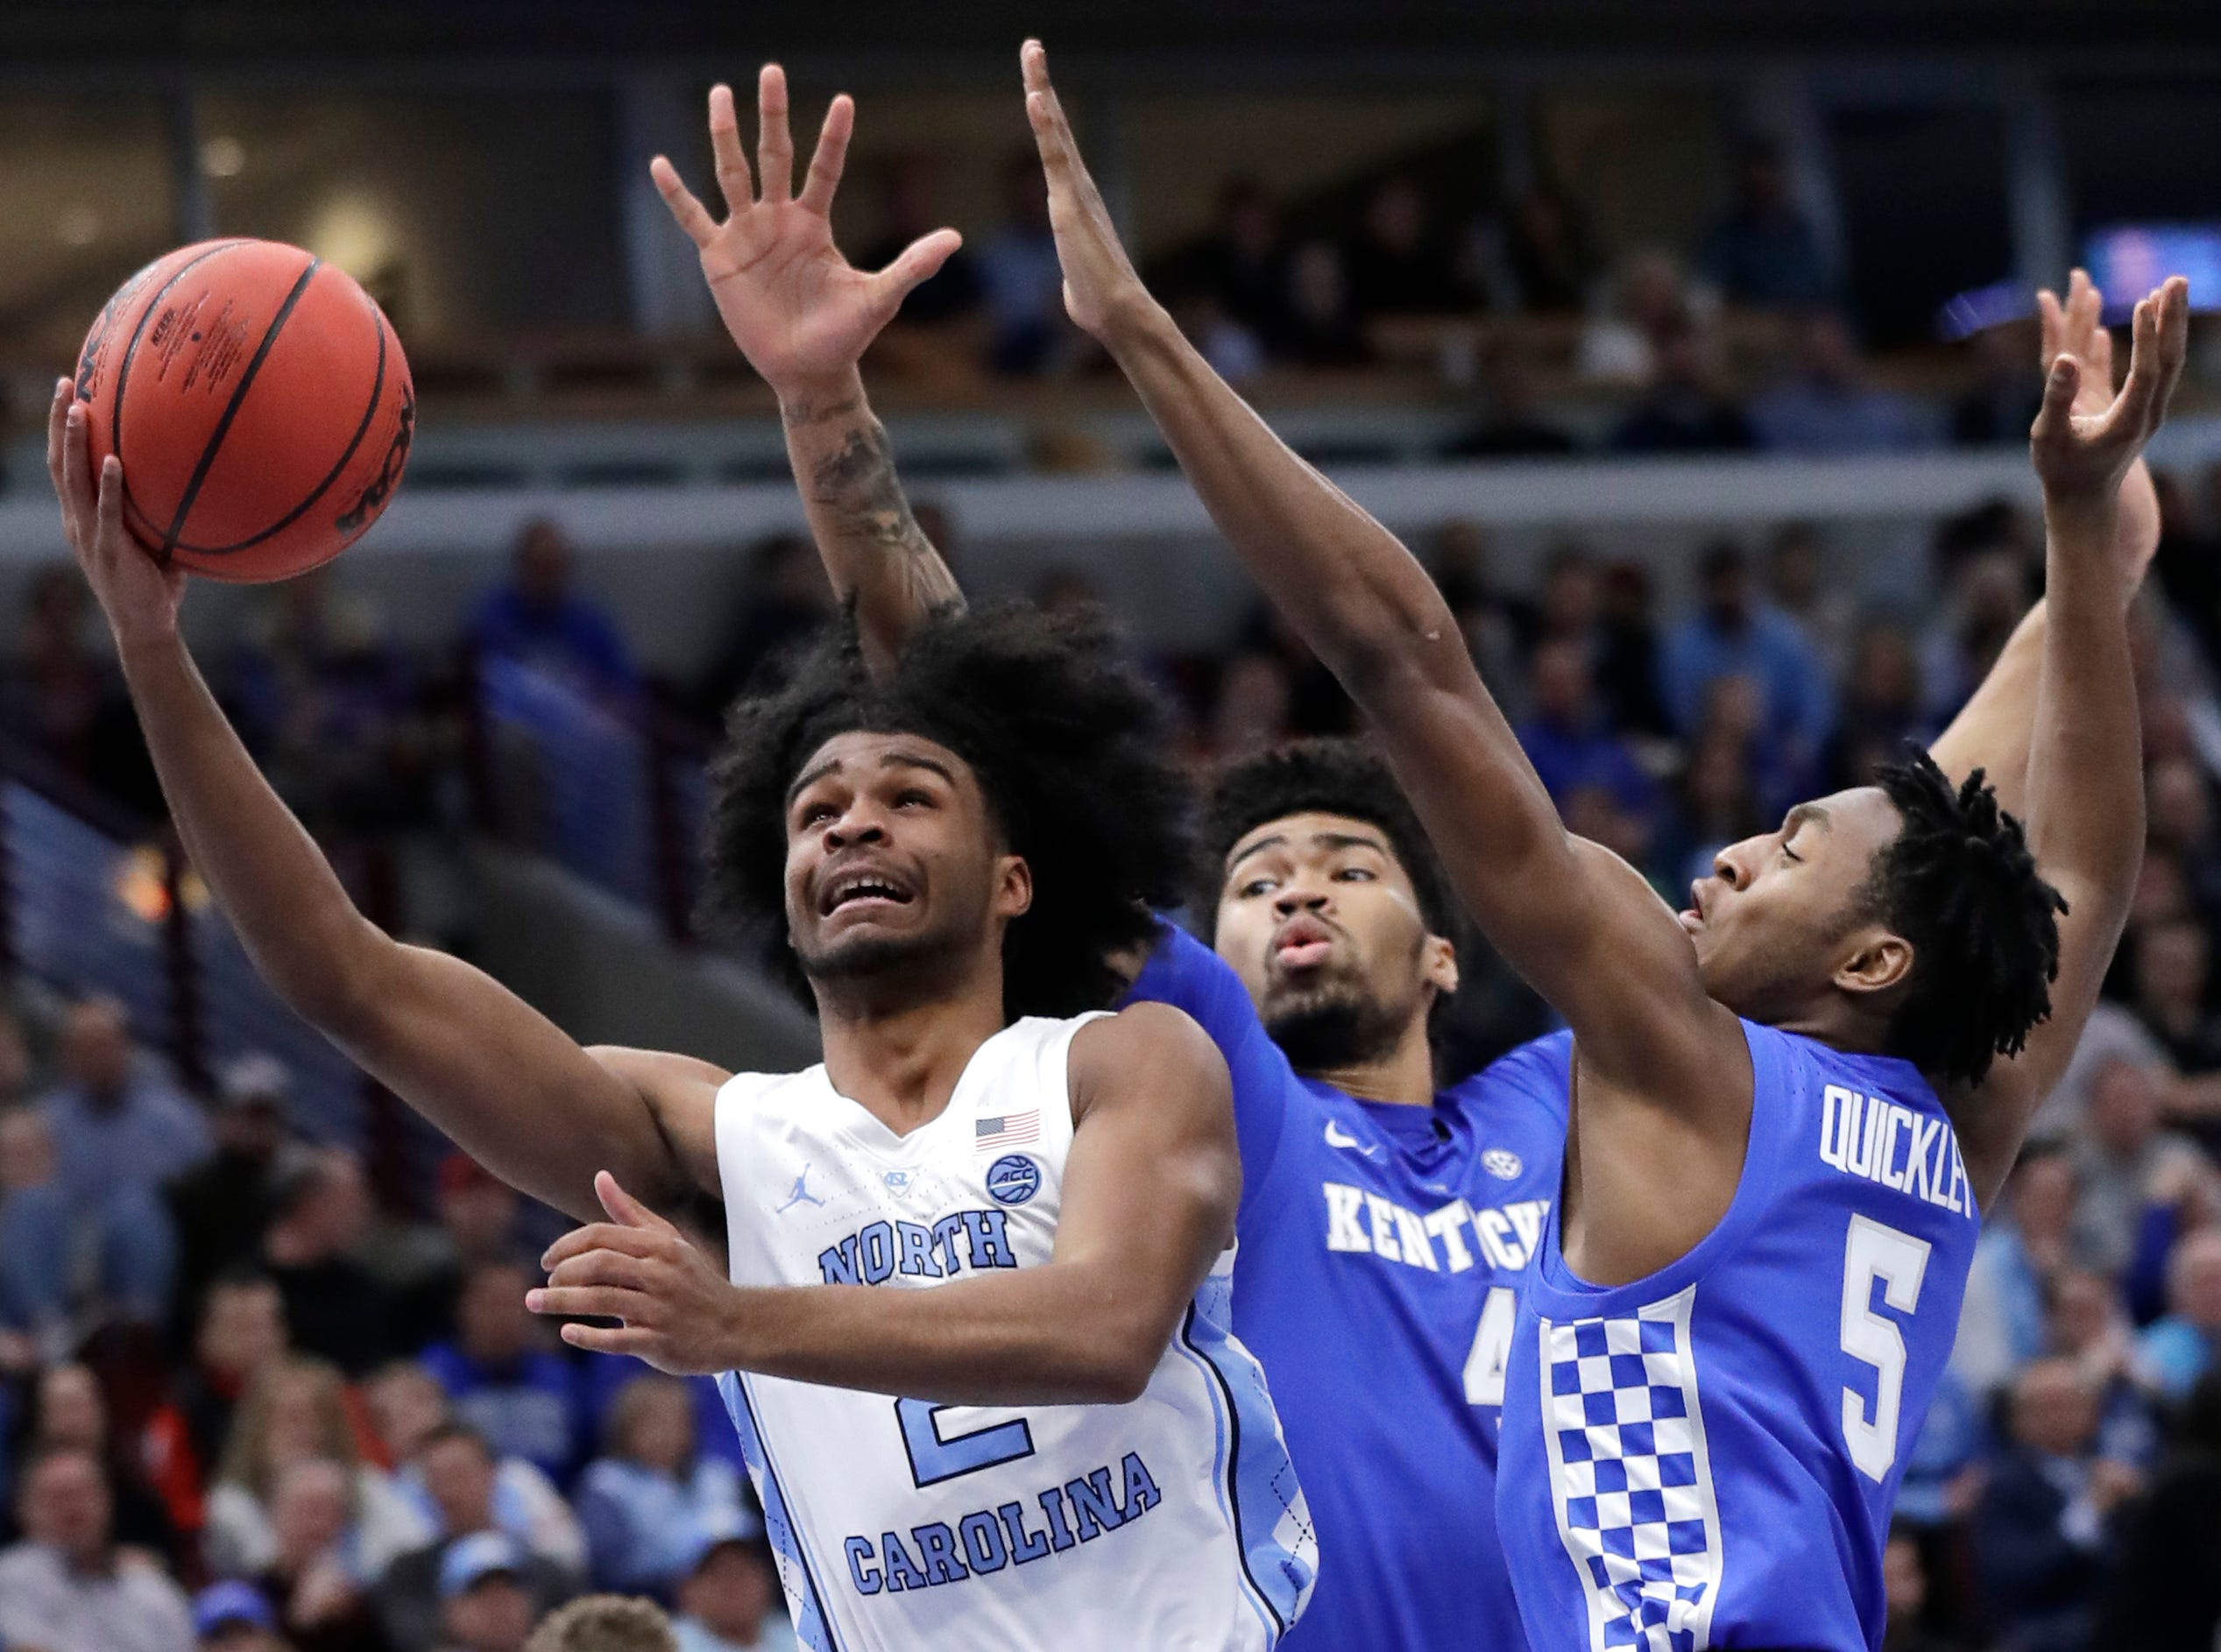 North Carolina guard Coby White, left, drives to the basket against Kentucky forward Nick Richards, center, and guard Immanuel Quickley during the first half of an NCAA college basketball game in the fifth annual CBS Sports Classic, Saturday, Dec. 22, 2018, in Chicago.